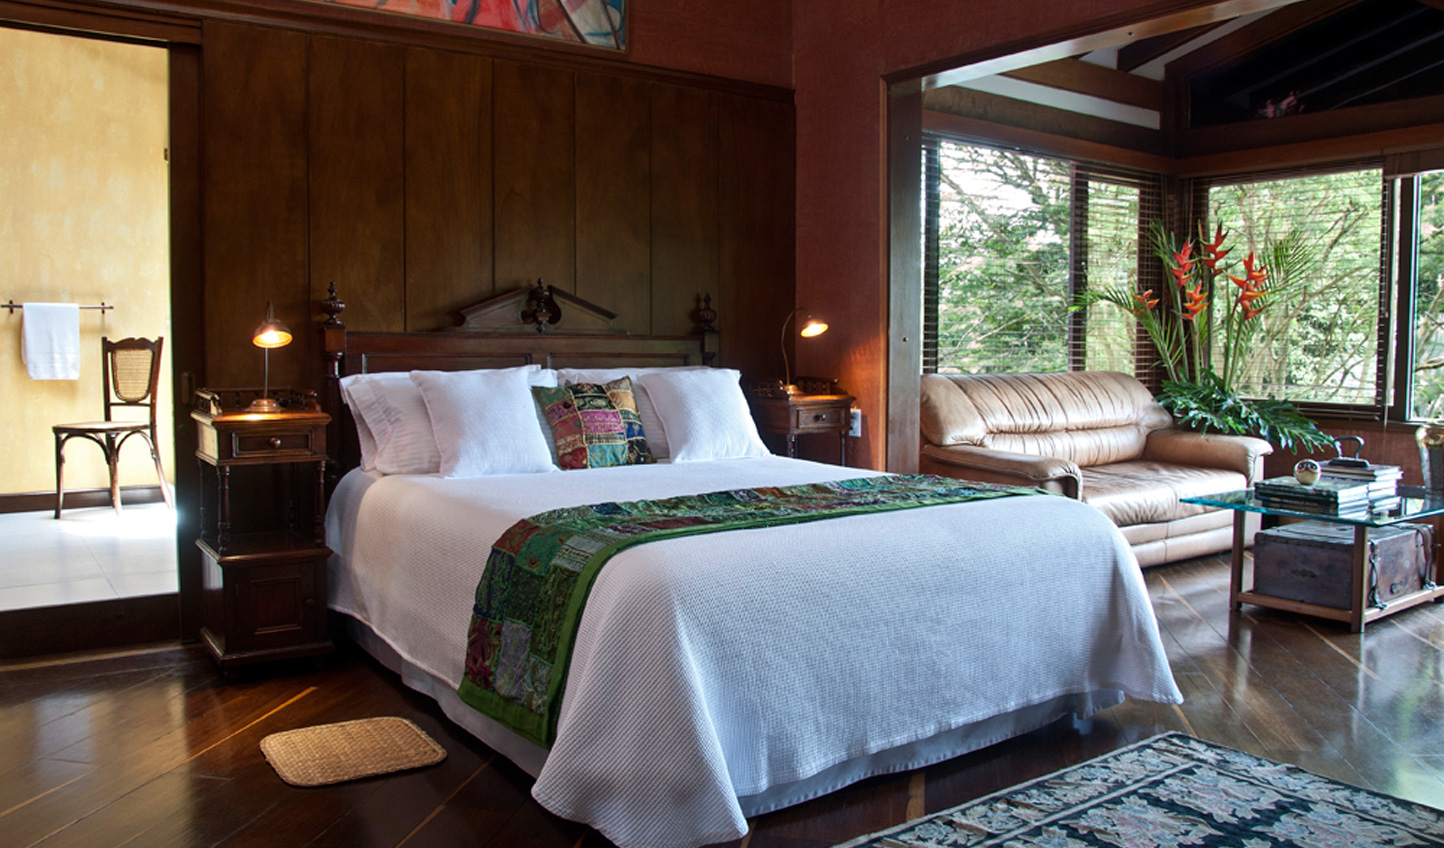 Comfortable rooms to dream away in